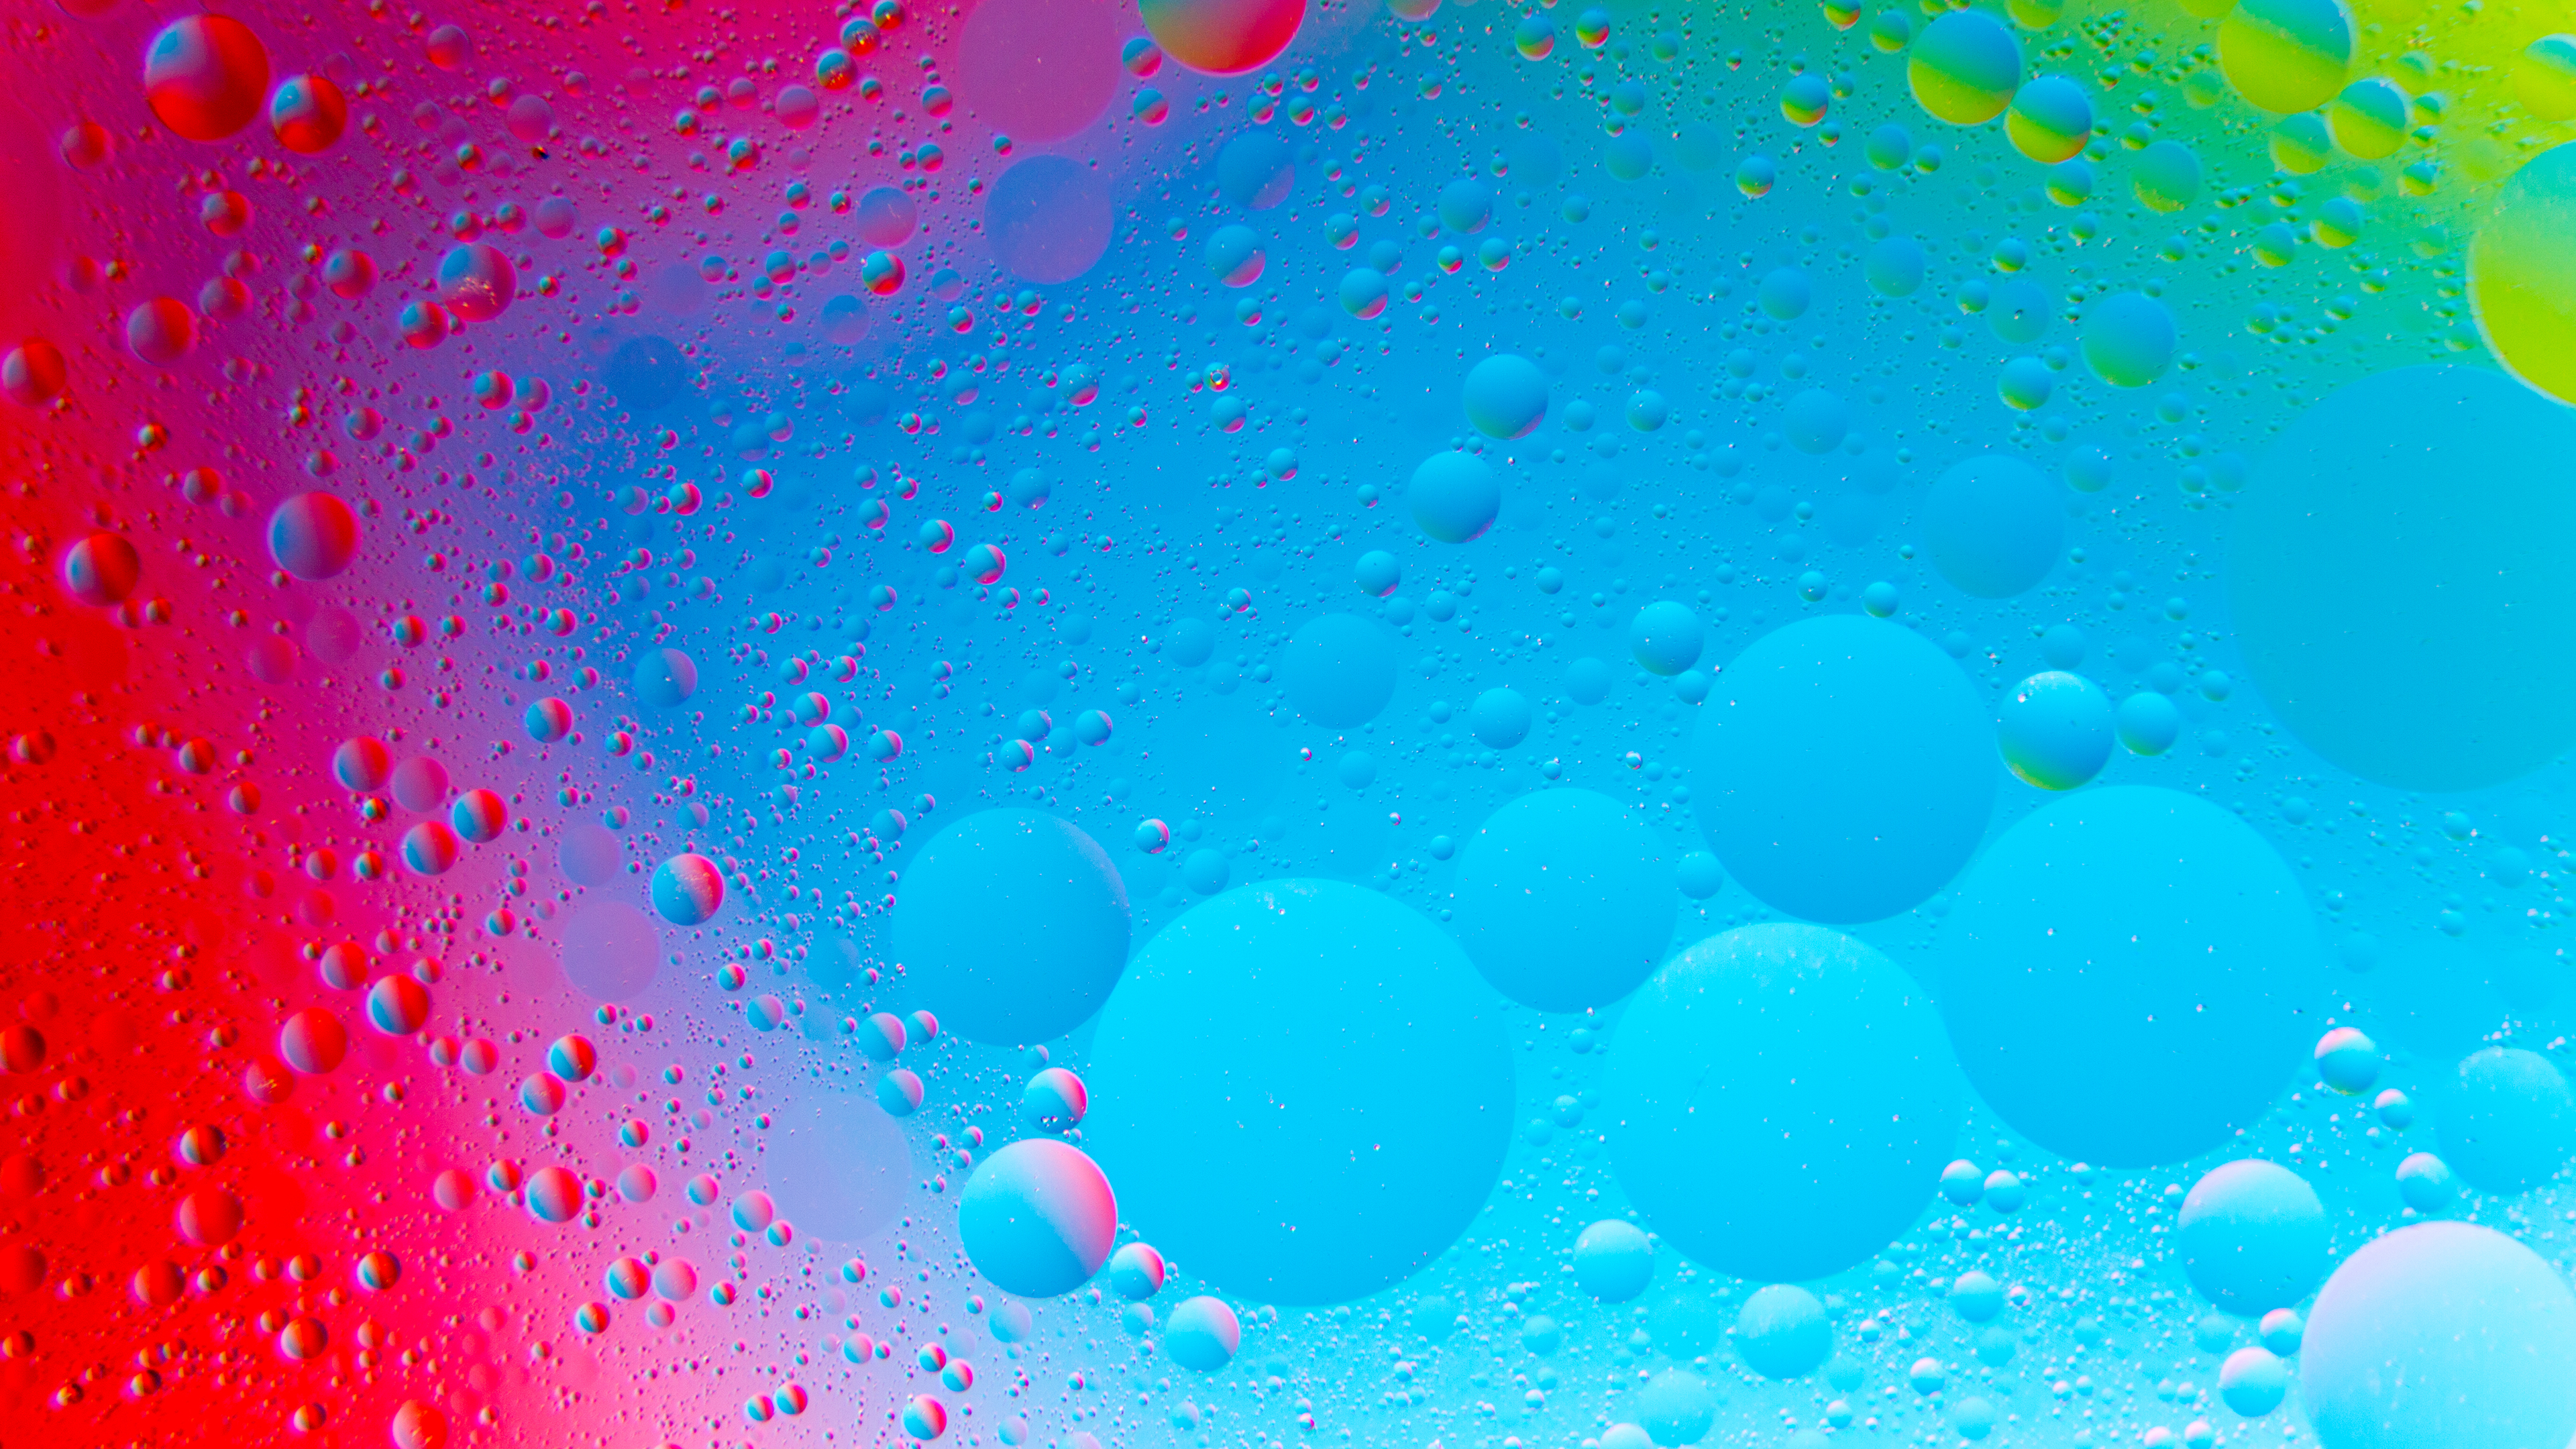 Vibrant Abstract Bubbles 4K Wallpapers | HD Wallpapers